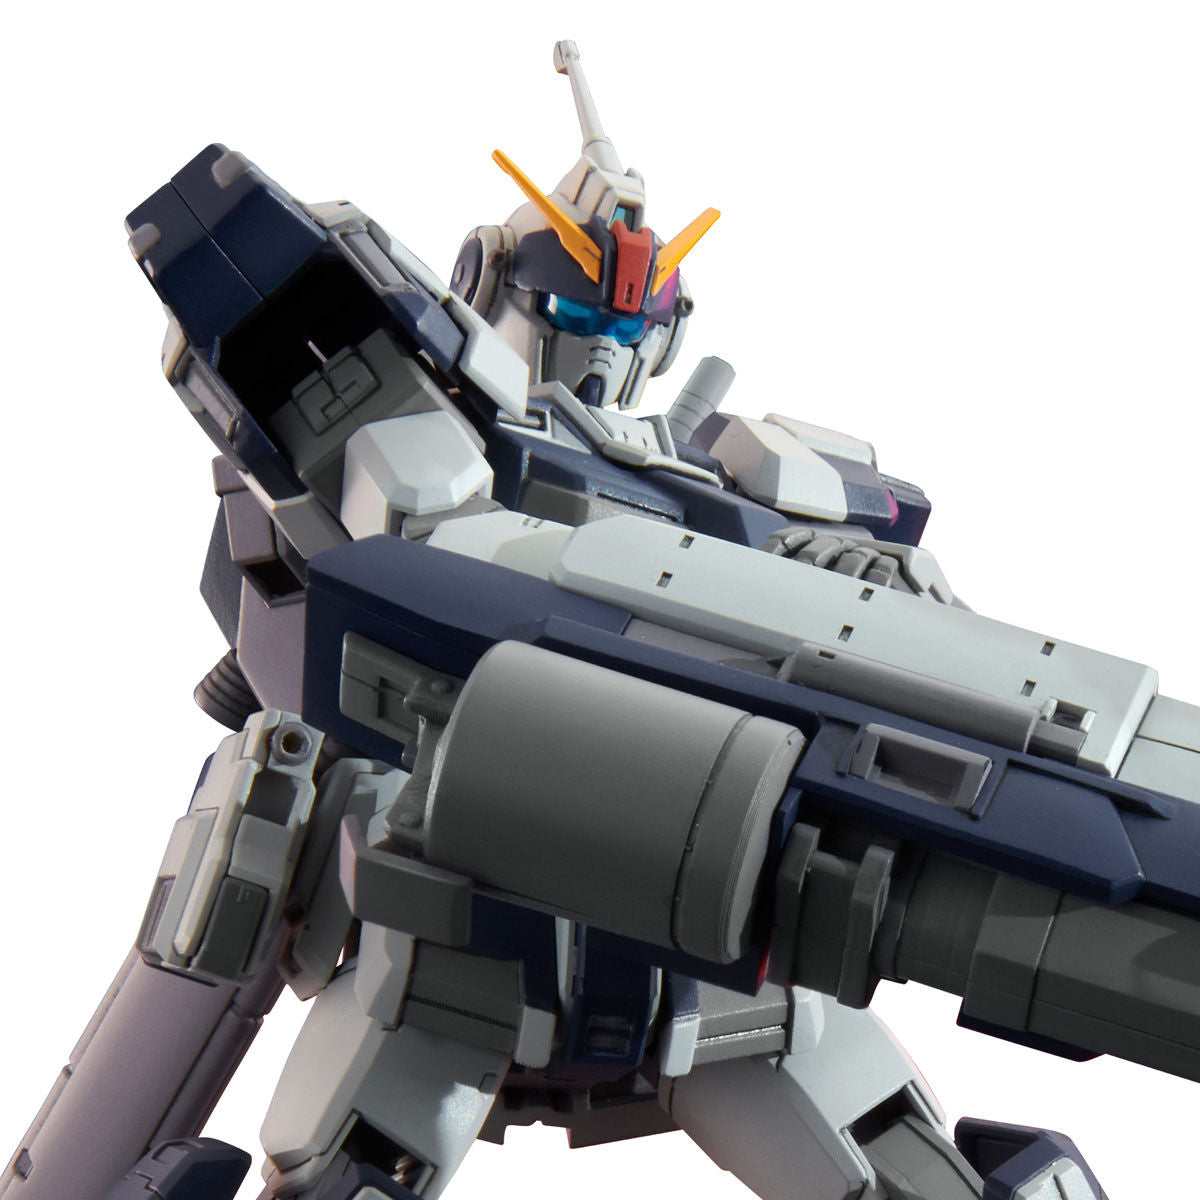 P-BANDAI: HGUC 1/144 PALE RIDER CAVALRY [END OF AUGUST 2021]